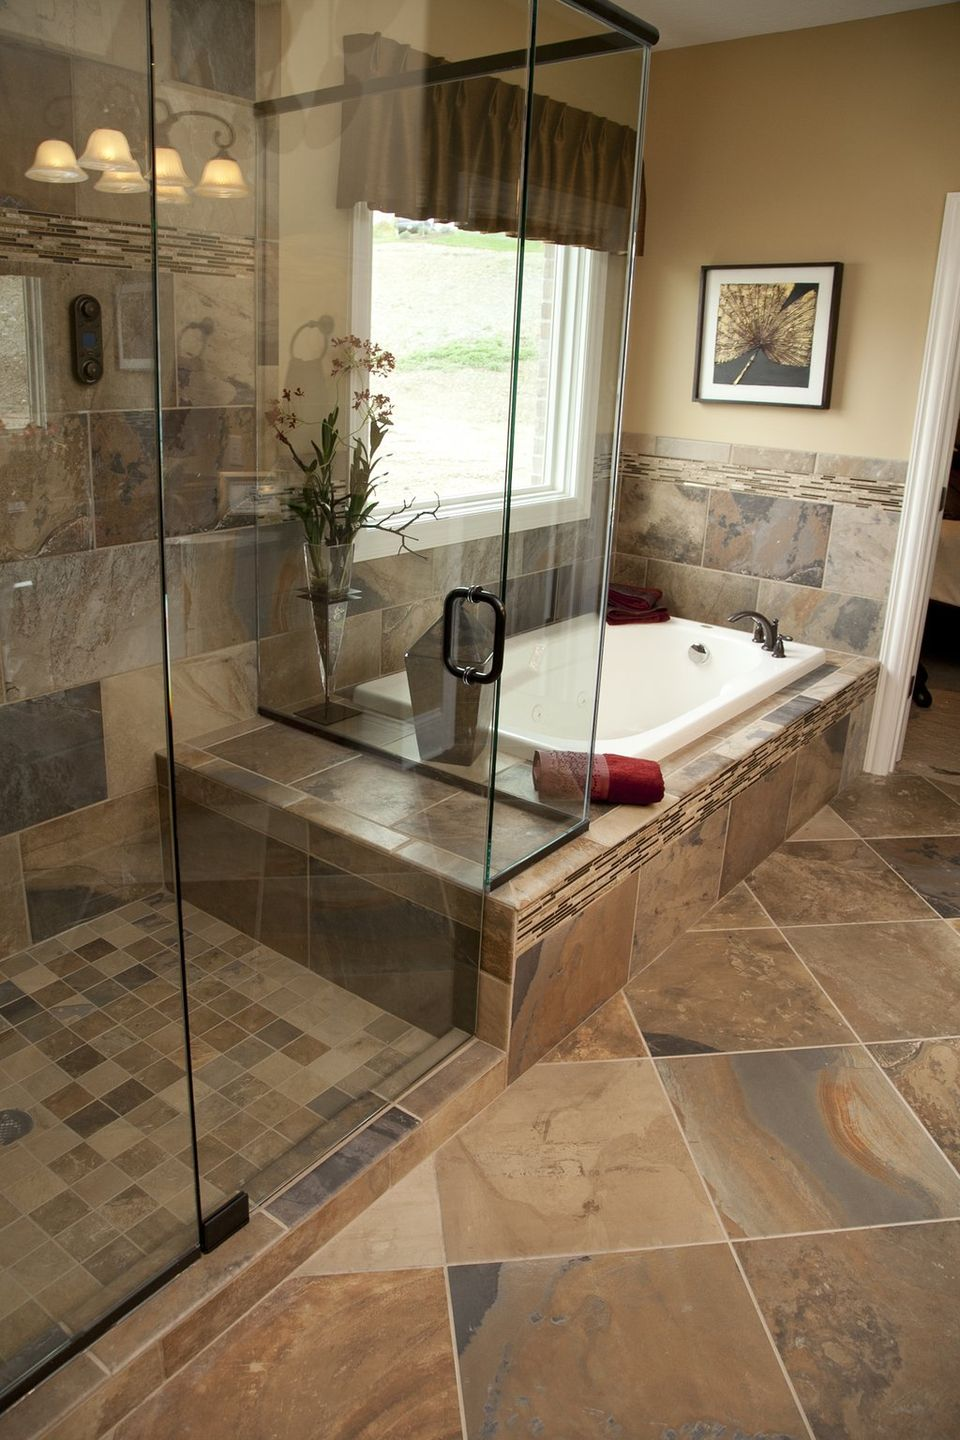 33 stunning pictures and ideas of natural stone bathroom for Pictures of bathroom flooring ideas